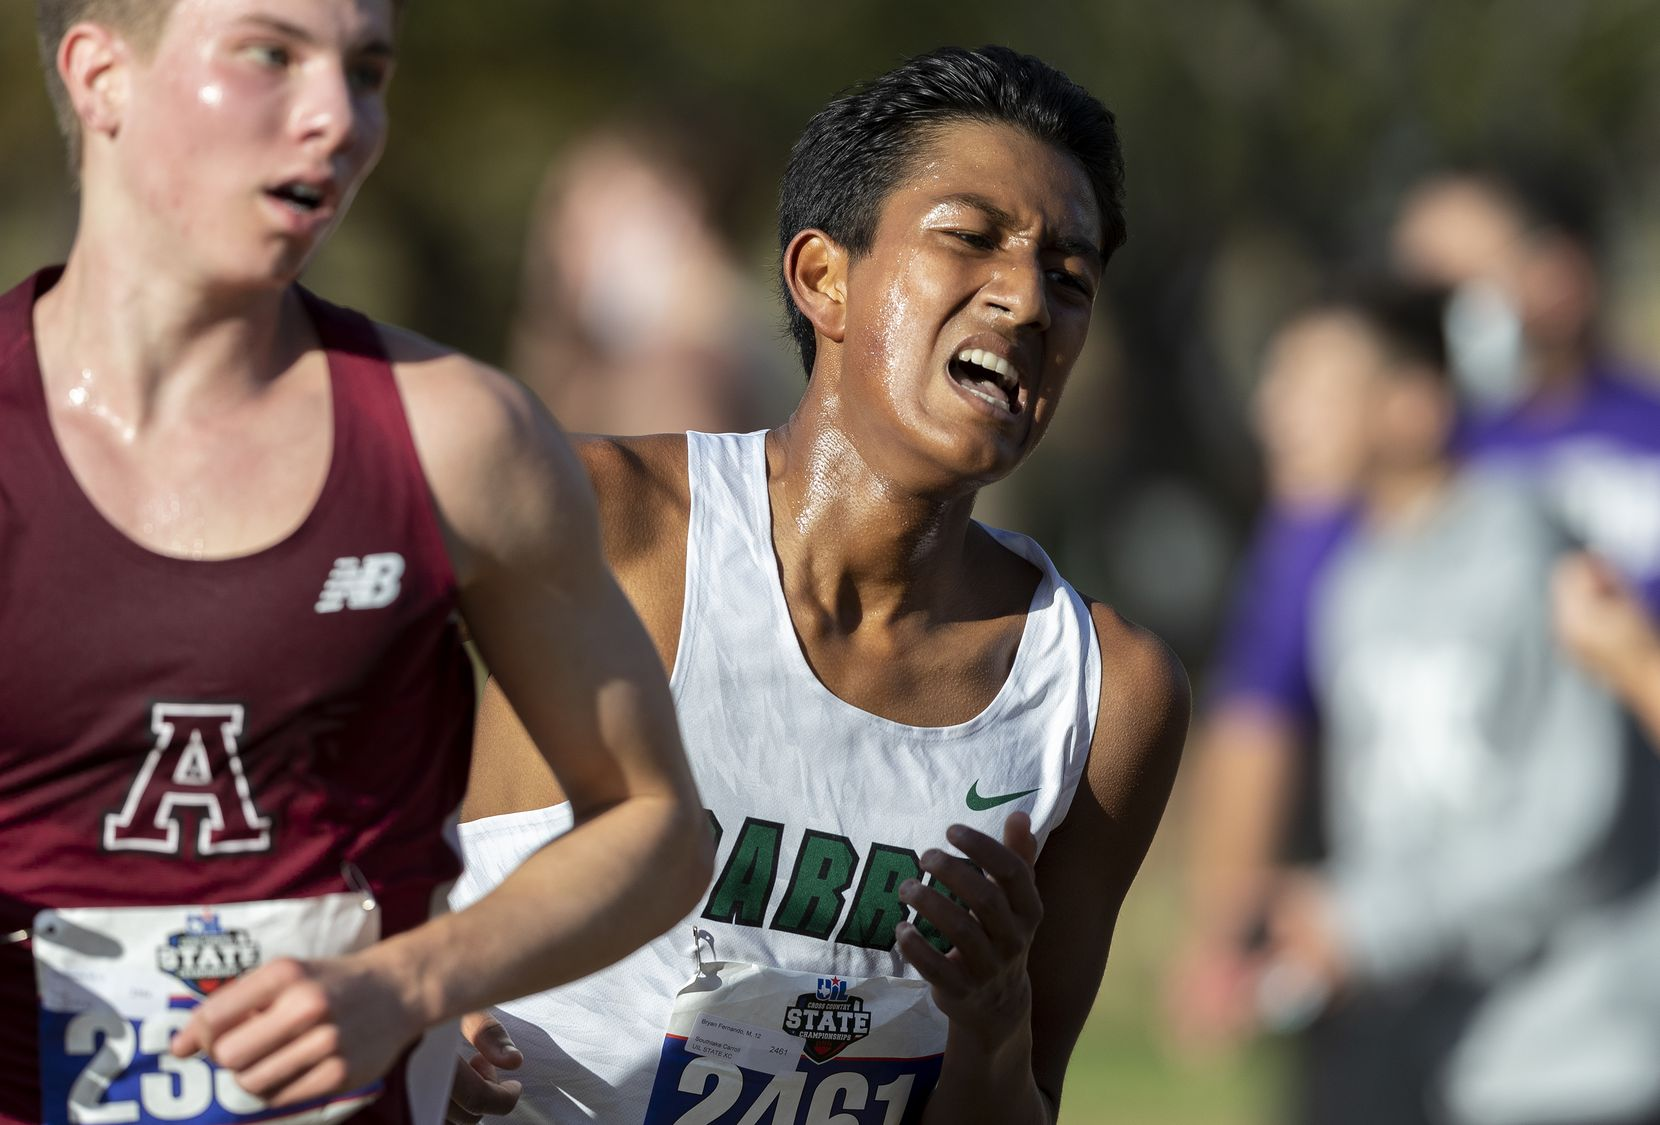 Southlake Carroll's Bryan Fernando (2461) competes in the boys UIL Class 6A state cross country meet in Round Rock, Tuesday, Nov., 24, 2020. (Stephen Spillman/Special Contributor)